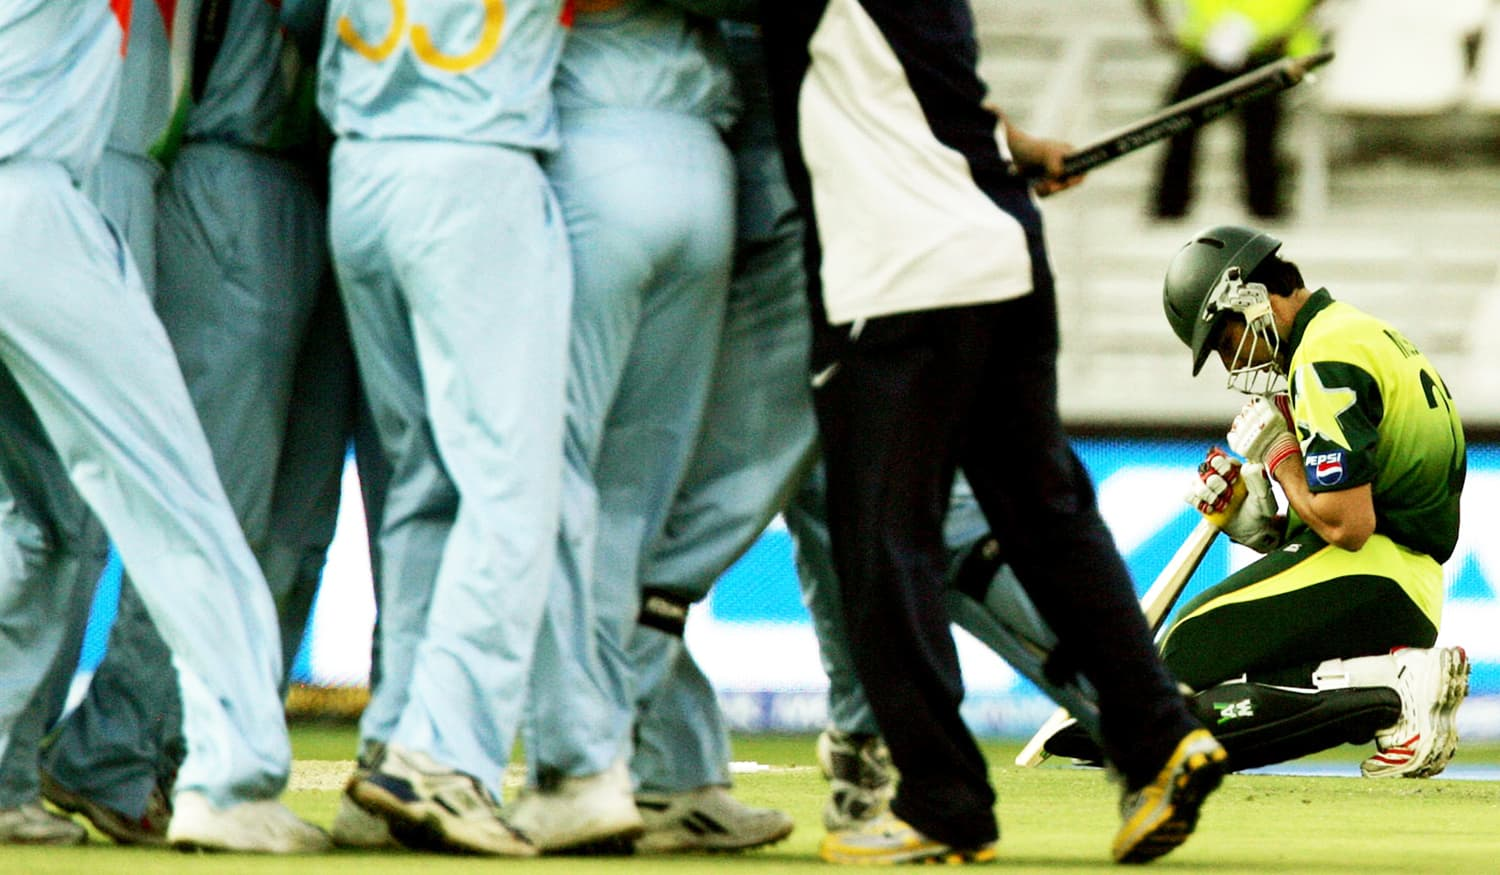 So near, and yet so far: Misbah is distraught at the 2007 T20 World Cup final, falling five runs short of what could have been a victory entirely orchestrated by him. — Photo: The Cricket Monthly